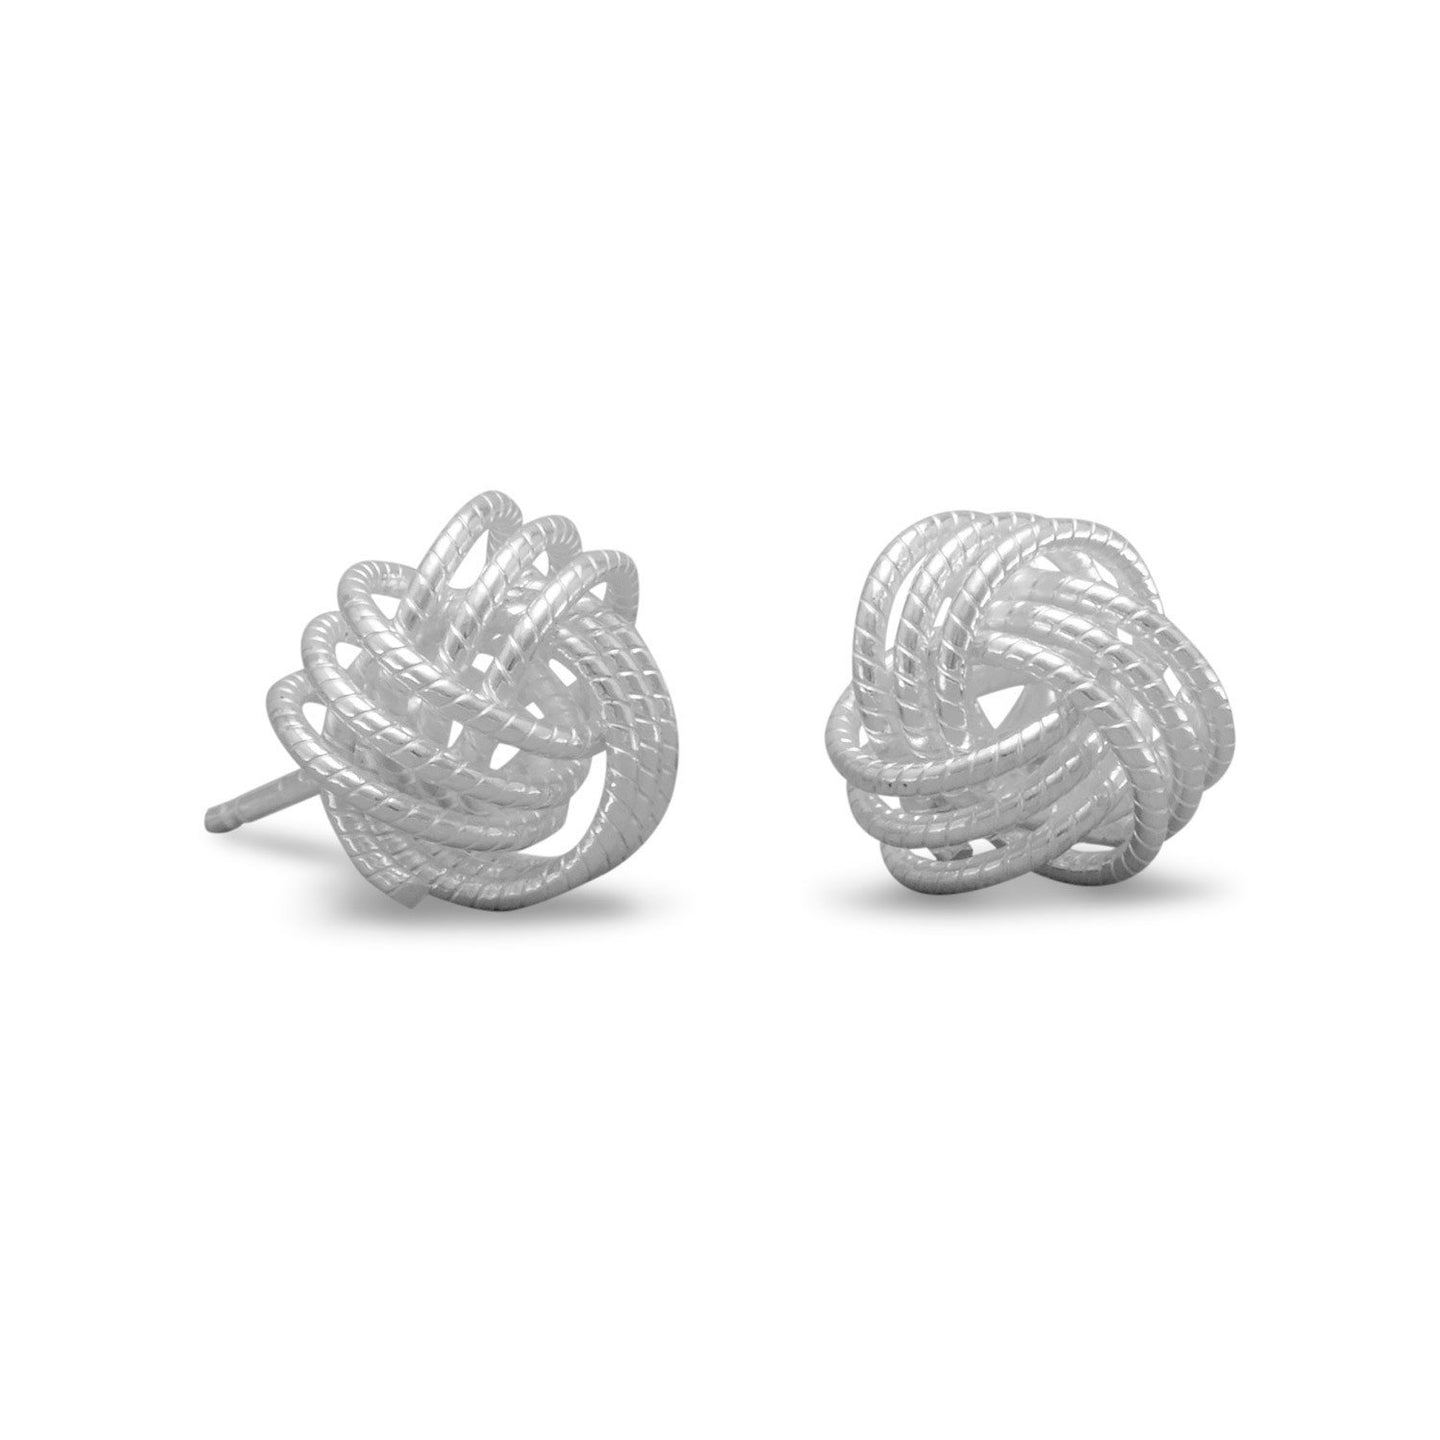 Made in Italy Small Twisted Love Knot Earrings Italian Jewelry - Shop Italy and Sicily Gifts Made in Italy Italian Themed